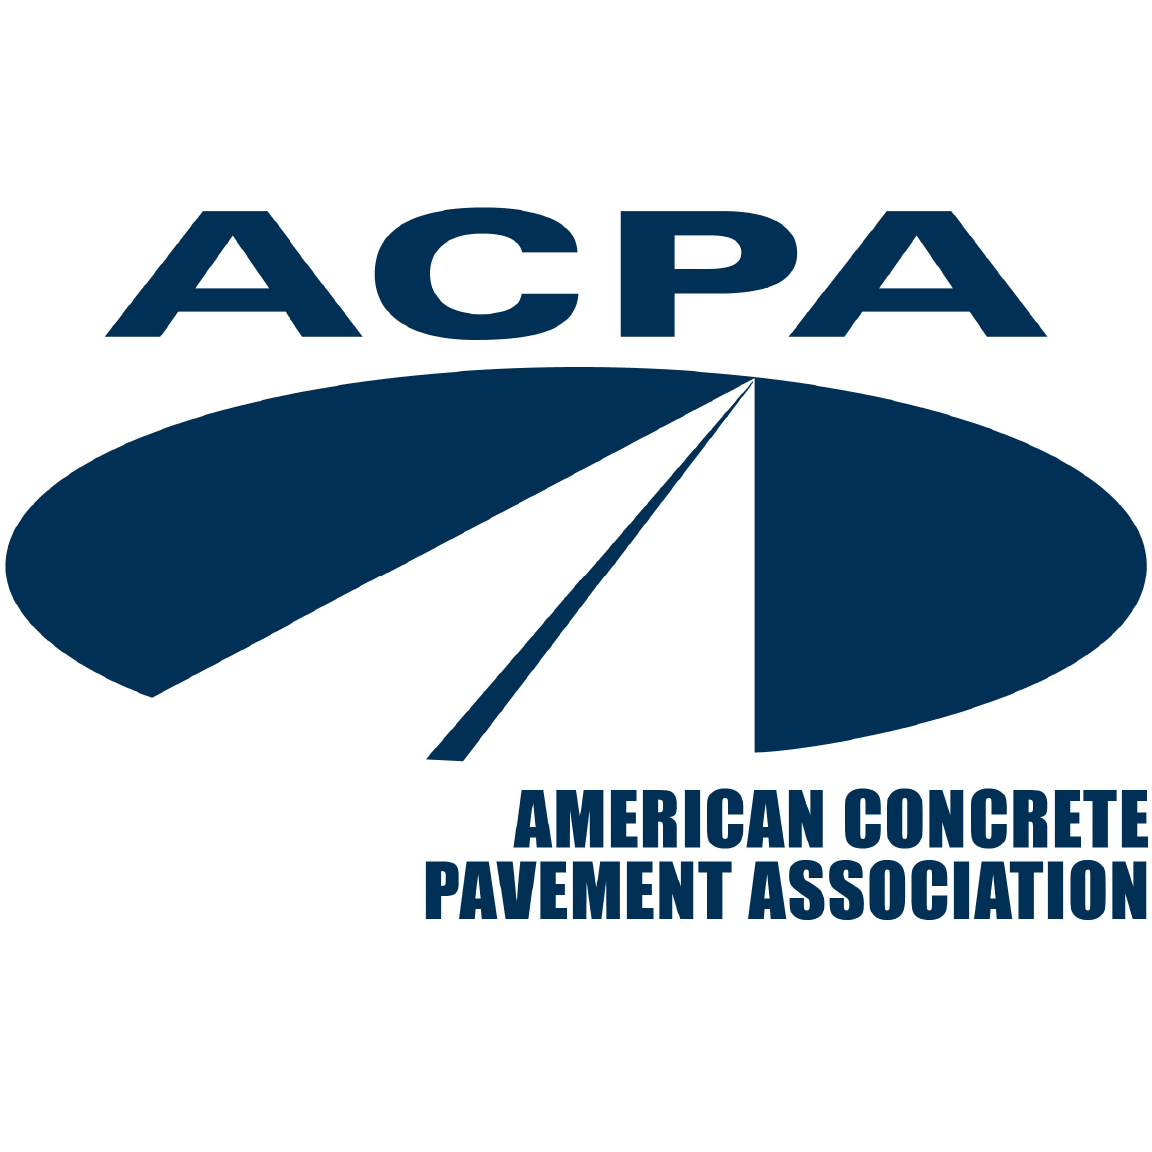 American Concrete Pavement Association membership badge